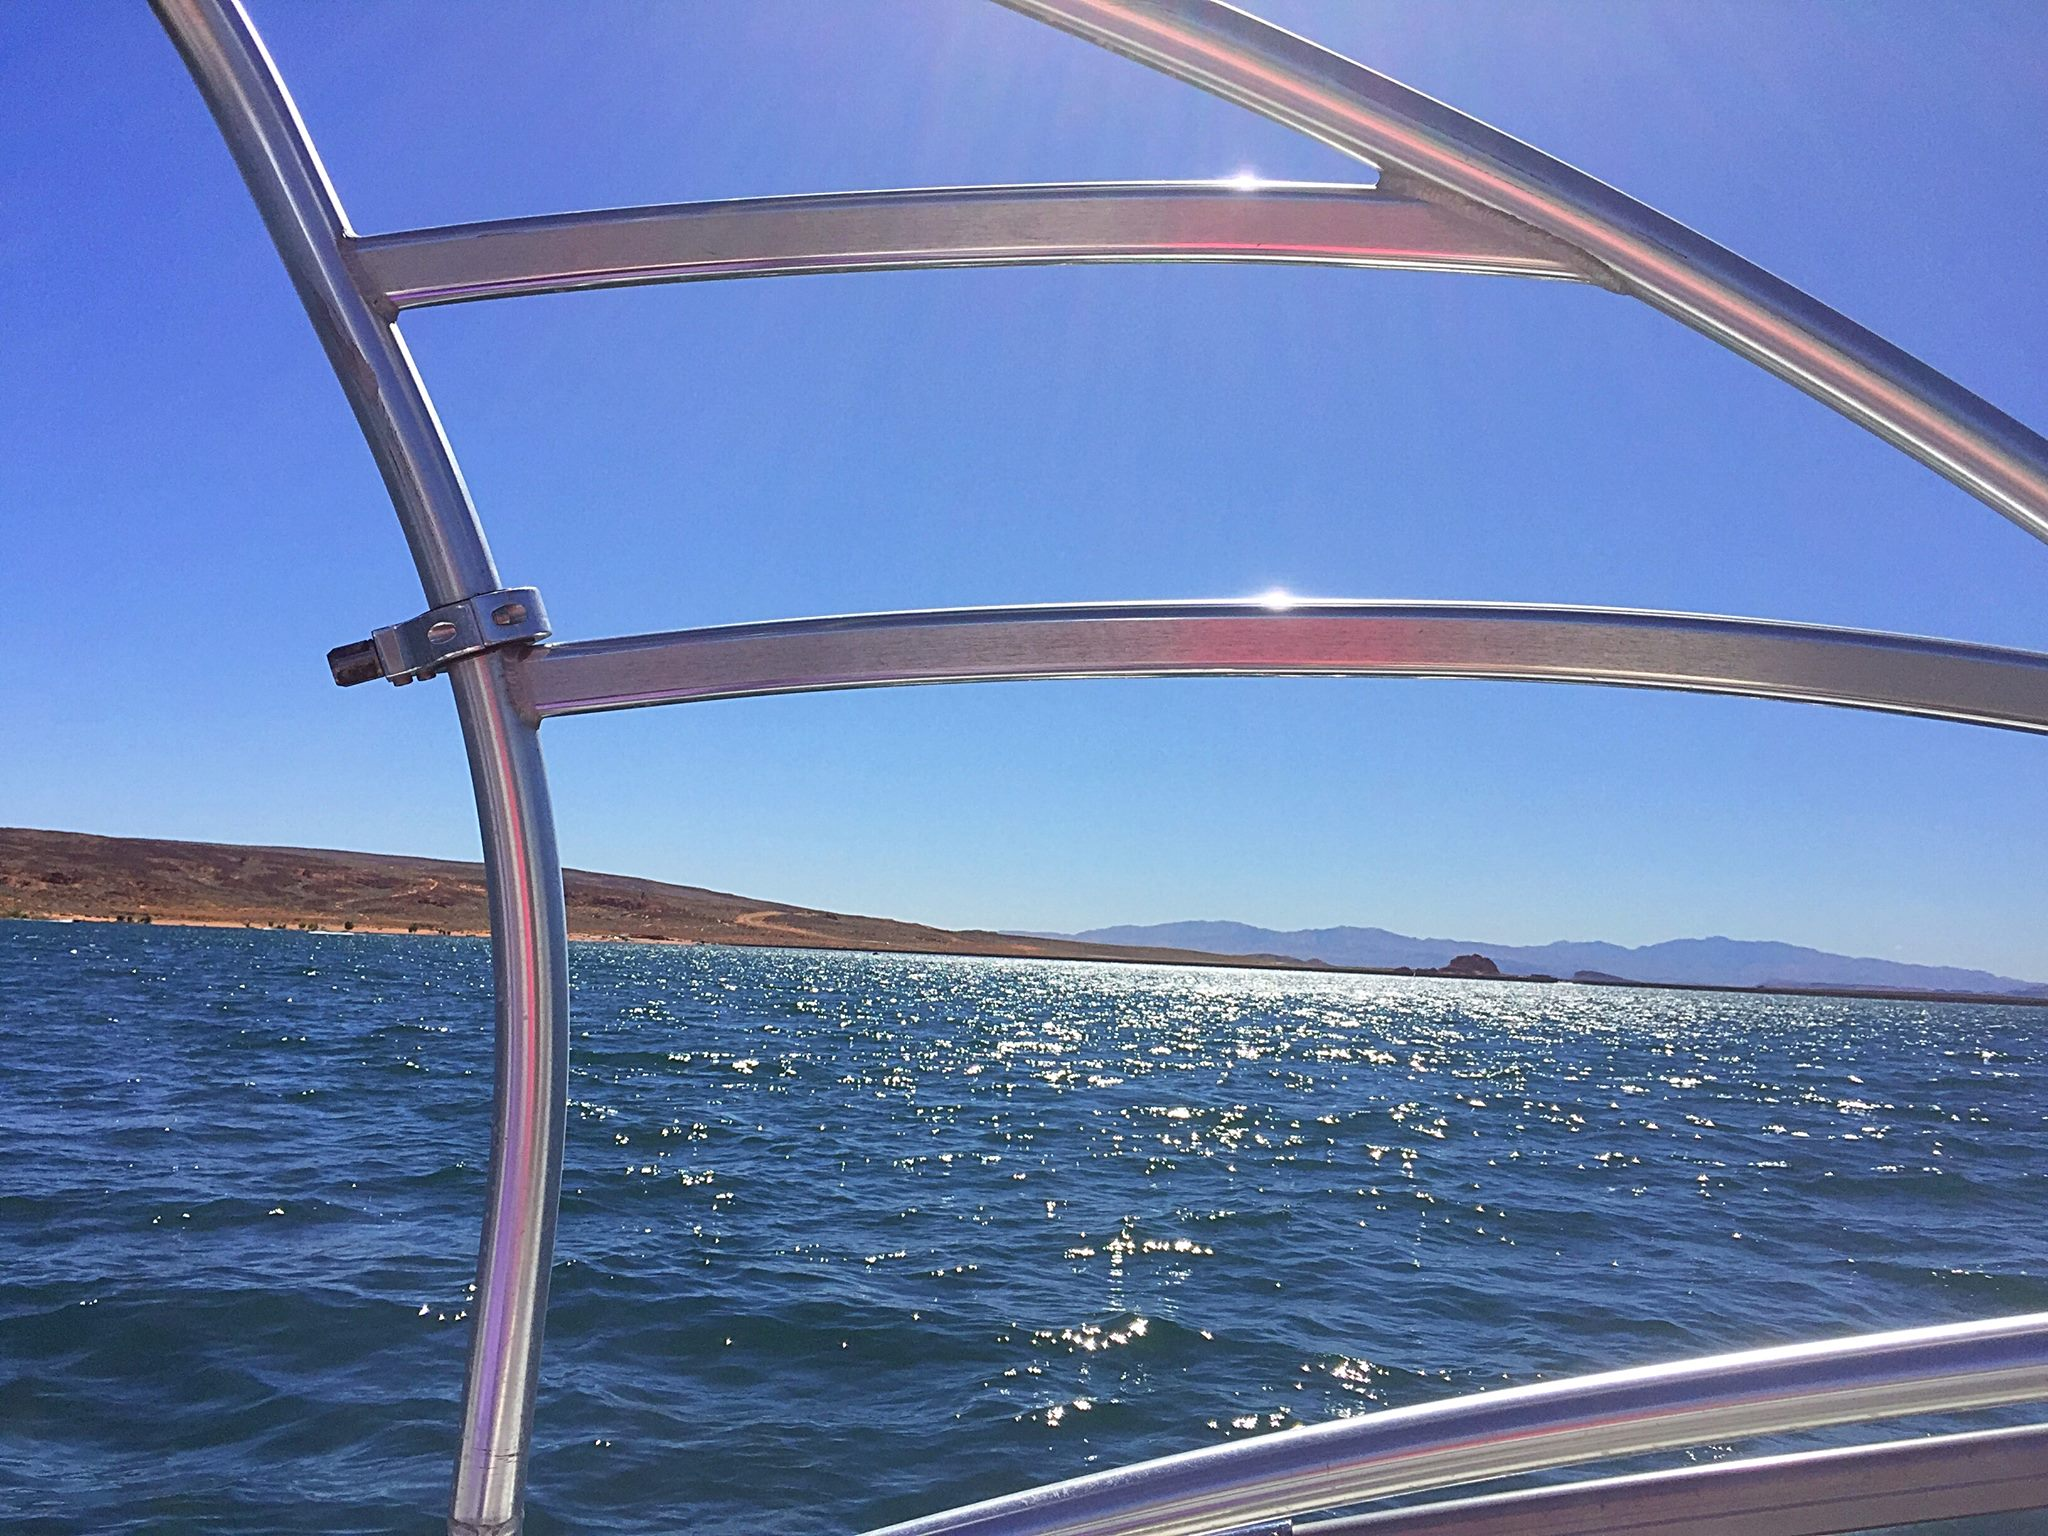 In an effort to reduce the number of people killed or injured in alcohol- or drug-related boating collisions, officials will be conducting OUI and boating safety checkpoints, stock image photo taken at Sand Hollow State Park, Utah, July 10, 2016 | Photo by Kimberly Scott, St. George News